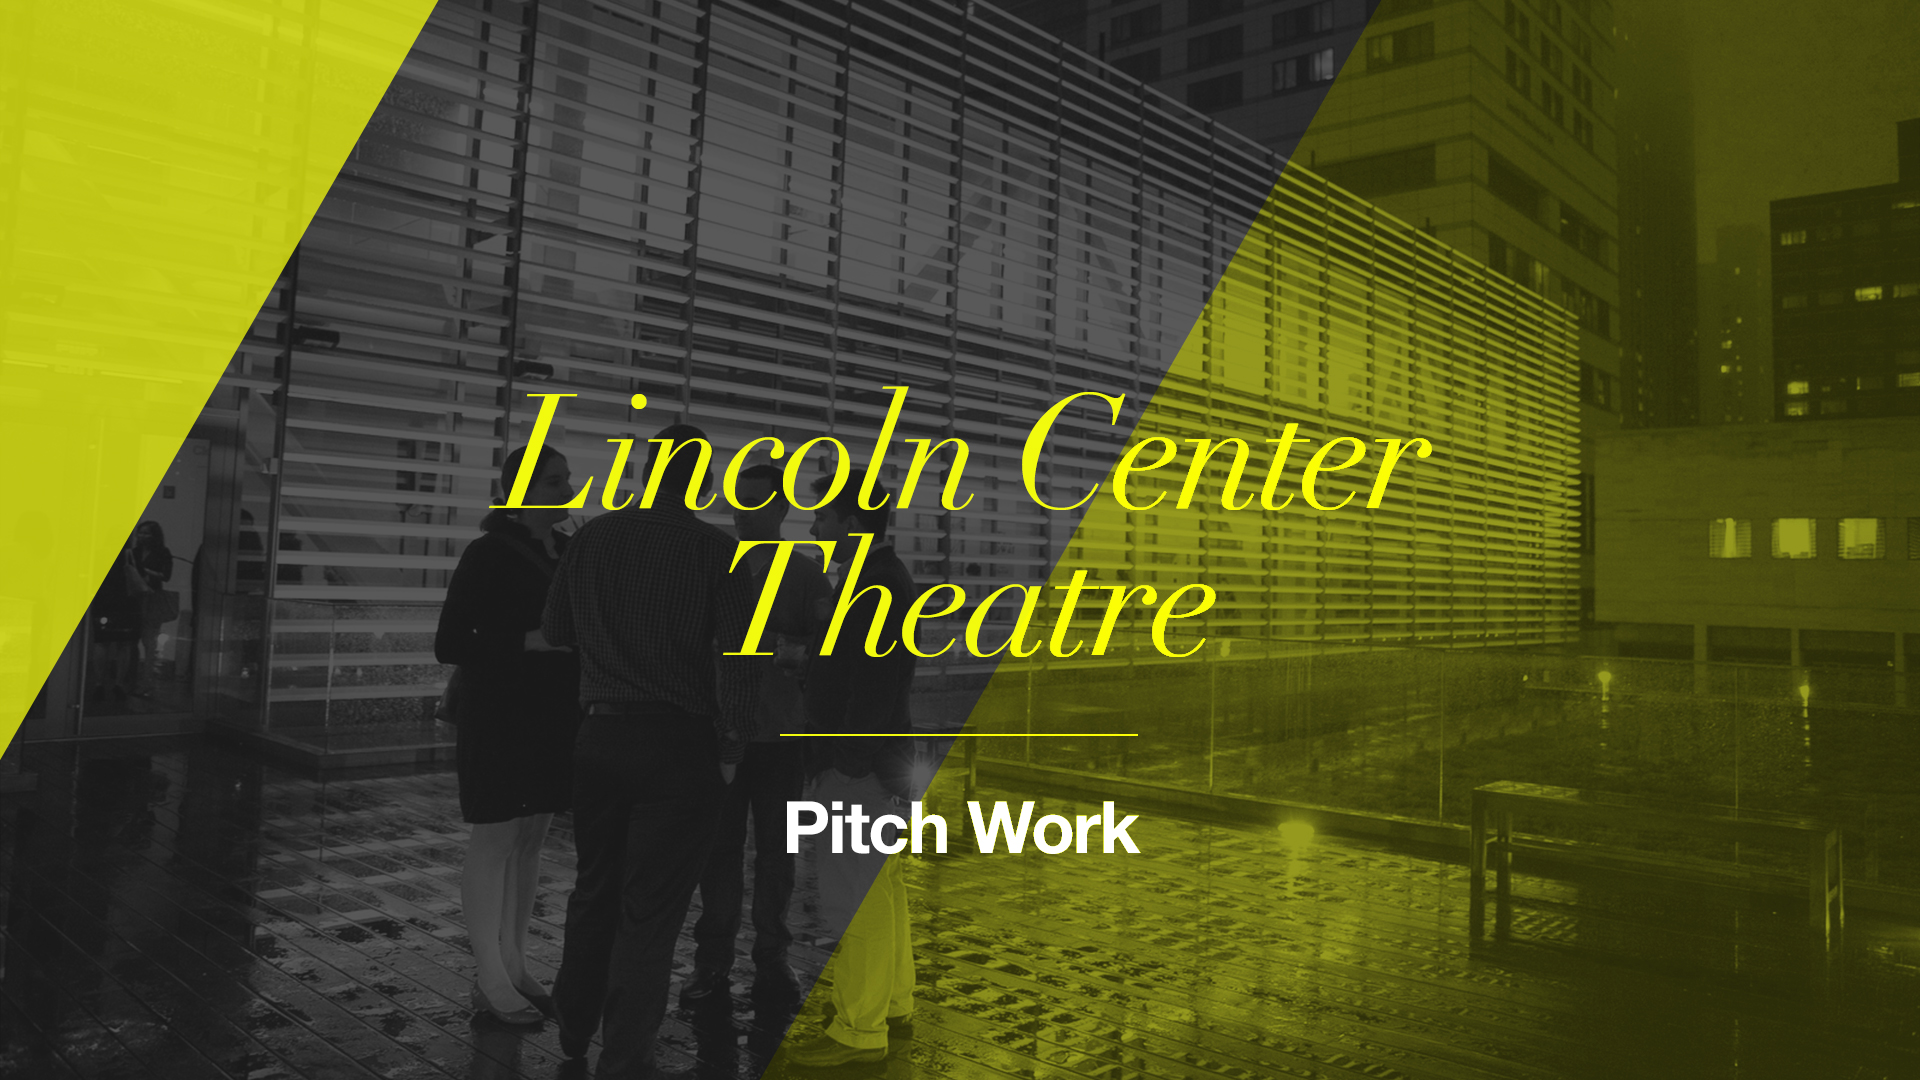 Lincoln Center Theatre: Pitch